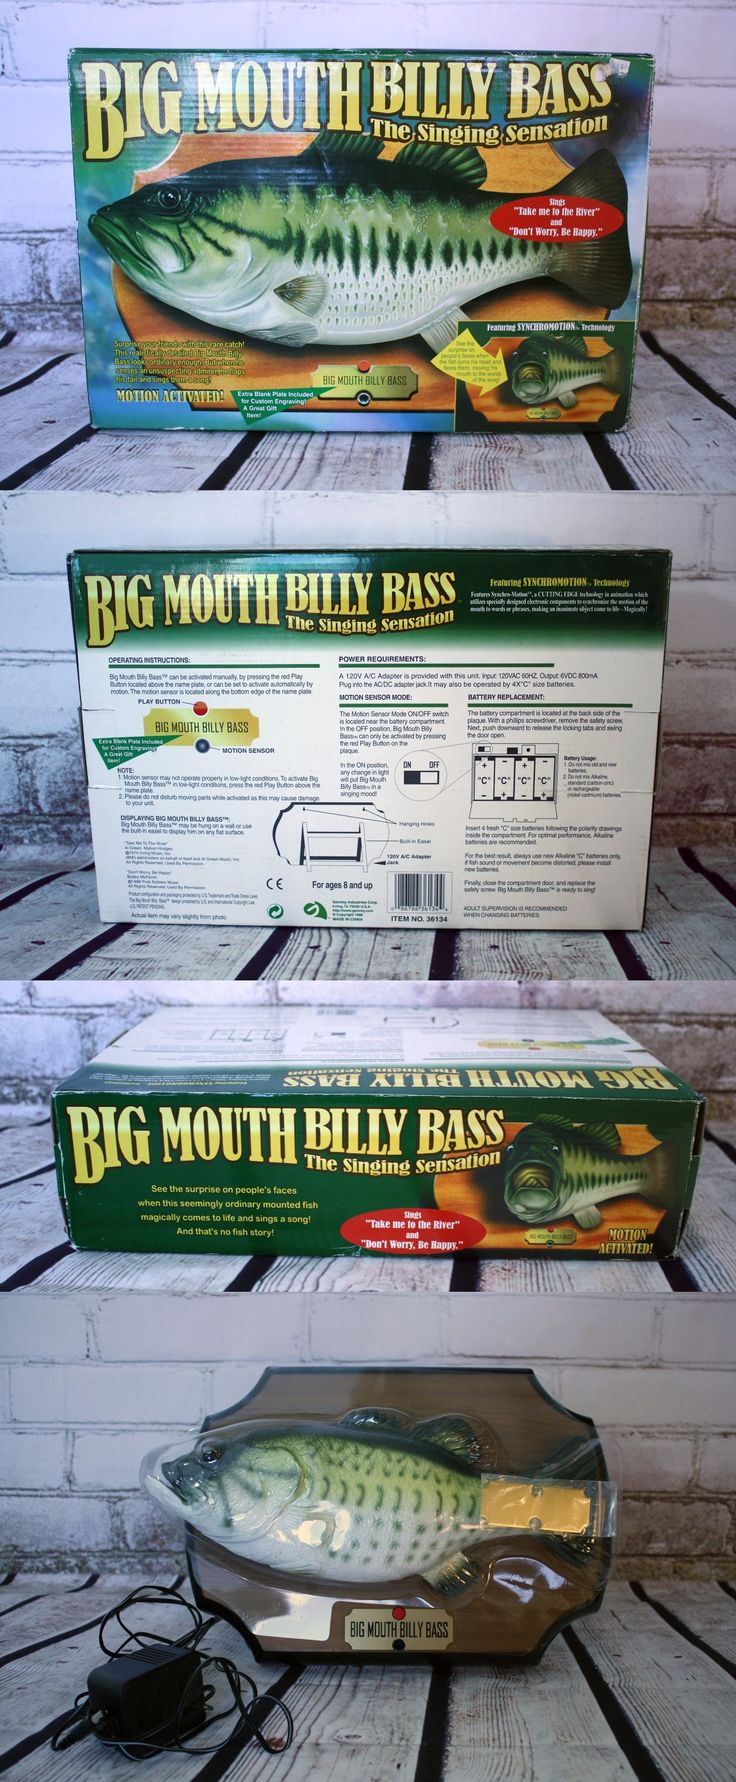 Novelties and Gifts 62143: Big Mouth Billy Bass Singing Fish Motion Activated Wall Plaque Nib New -> BUY IT NOW ONLY: $34.99 on eBay!